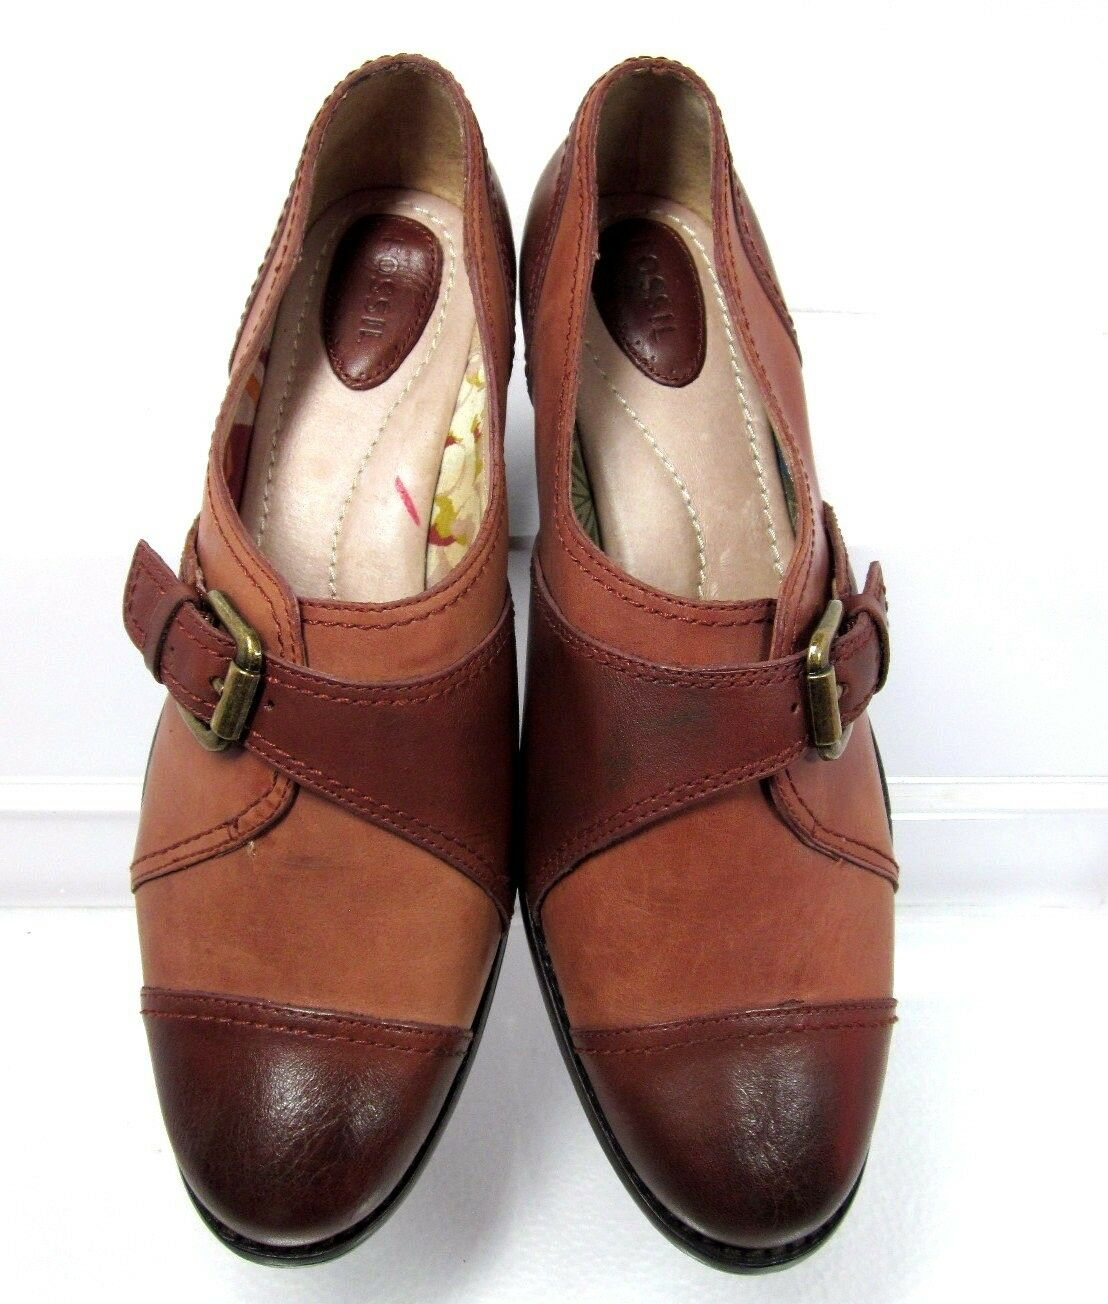 FOSSIL Tan & Brown Leather Monk Strap Buckle Cap Toe Comfort Size 9 Minimal Wear